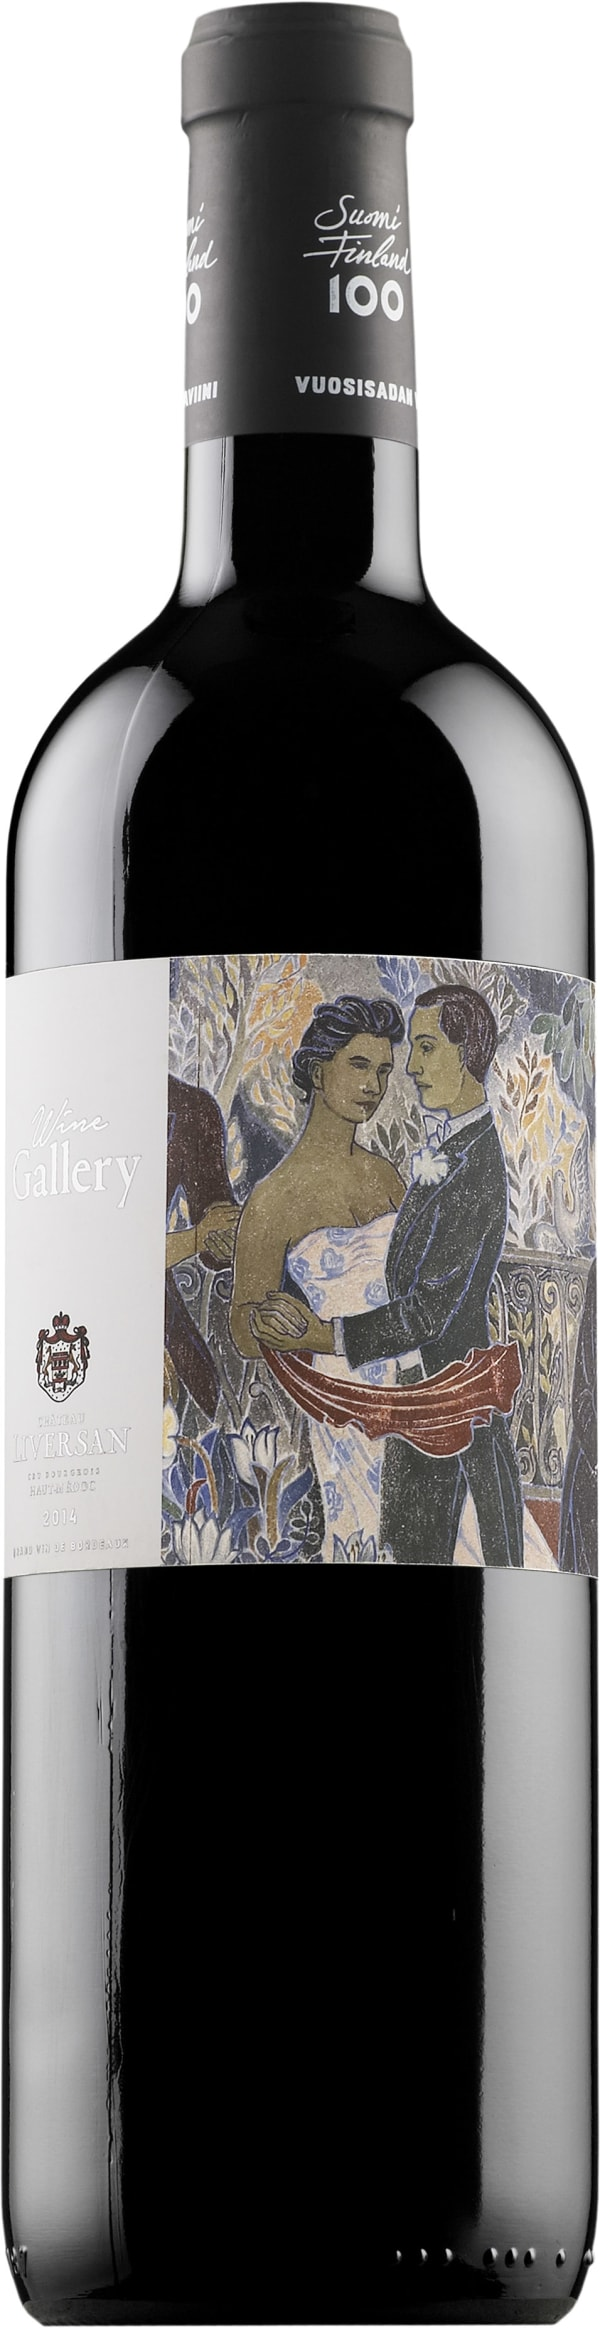 Wine Gallery Suomi Finland 100 Bordeaux Rouge 2014